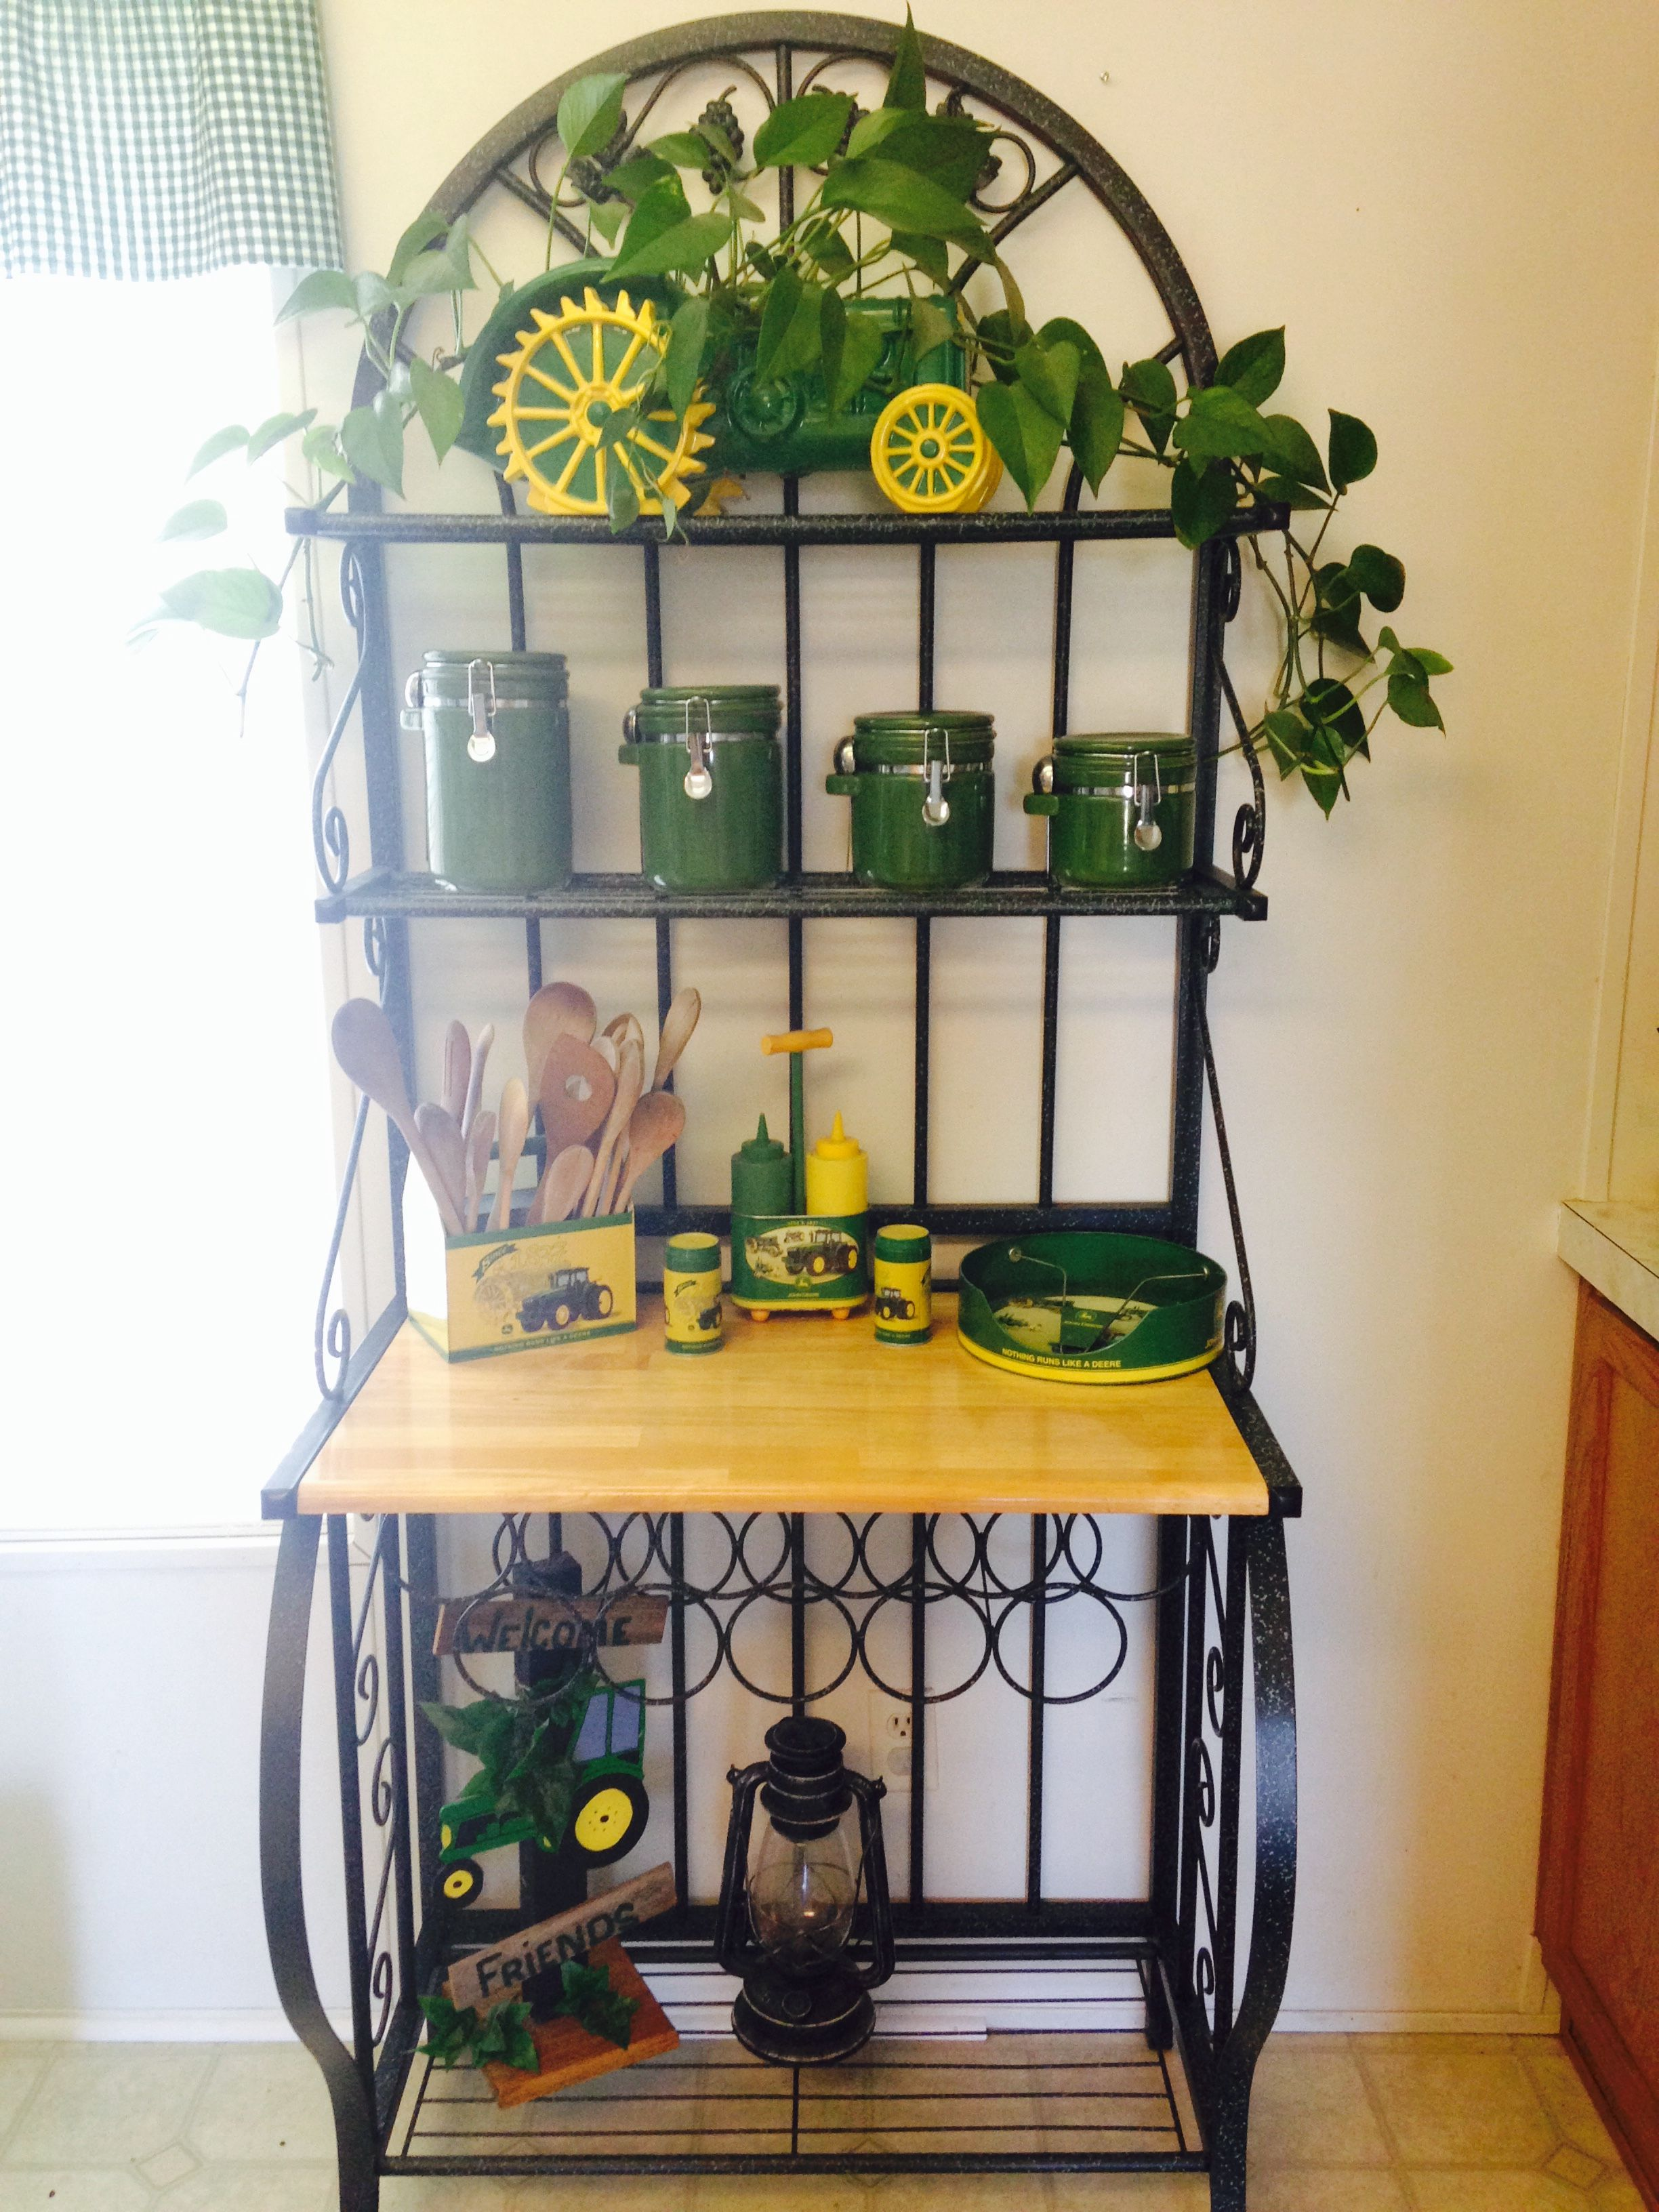 I decorated my new Baker s rack with my John Deere décor I think